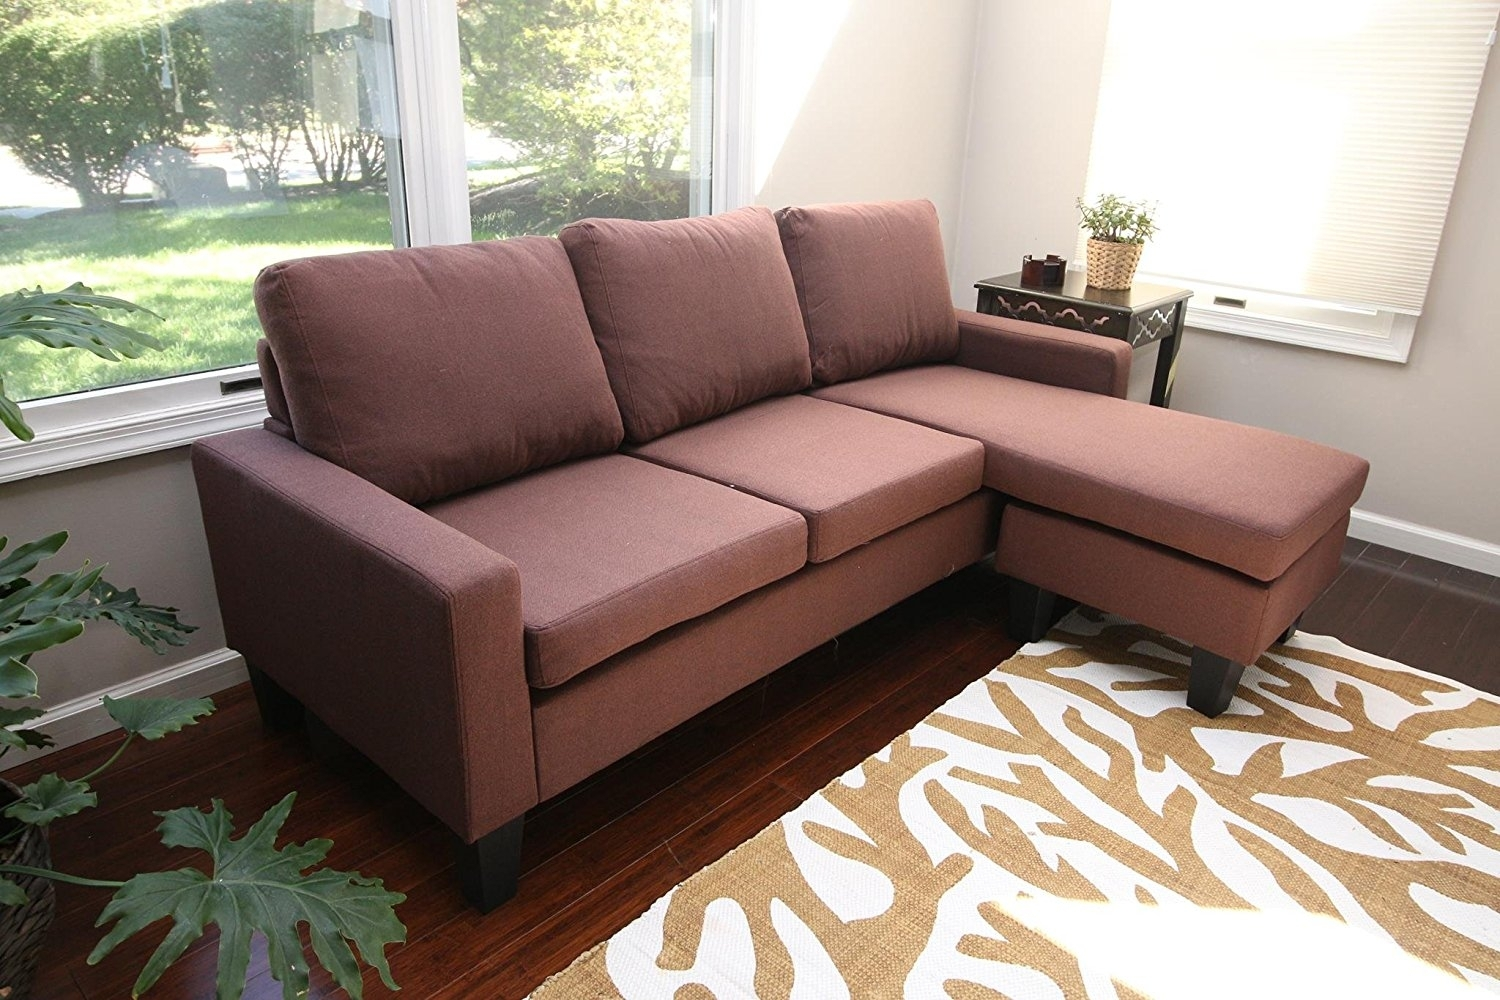 Furniture : Corner Couch And Swivel Chair Sectional Couch Vancouver For Vancouver Wa Sectional Sofas (Image 3 of 10)